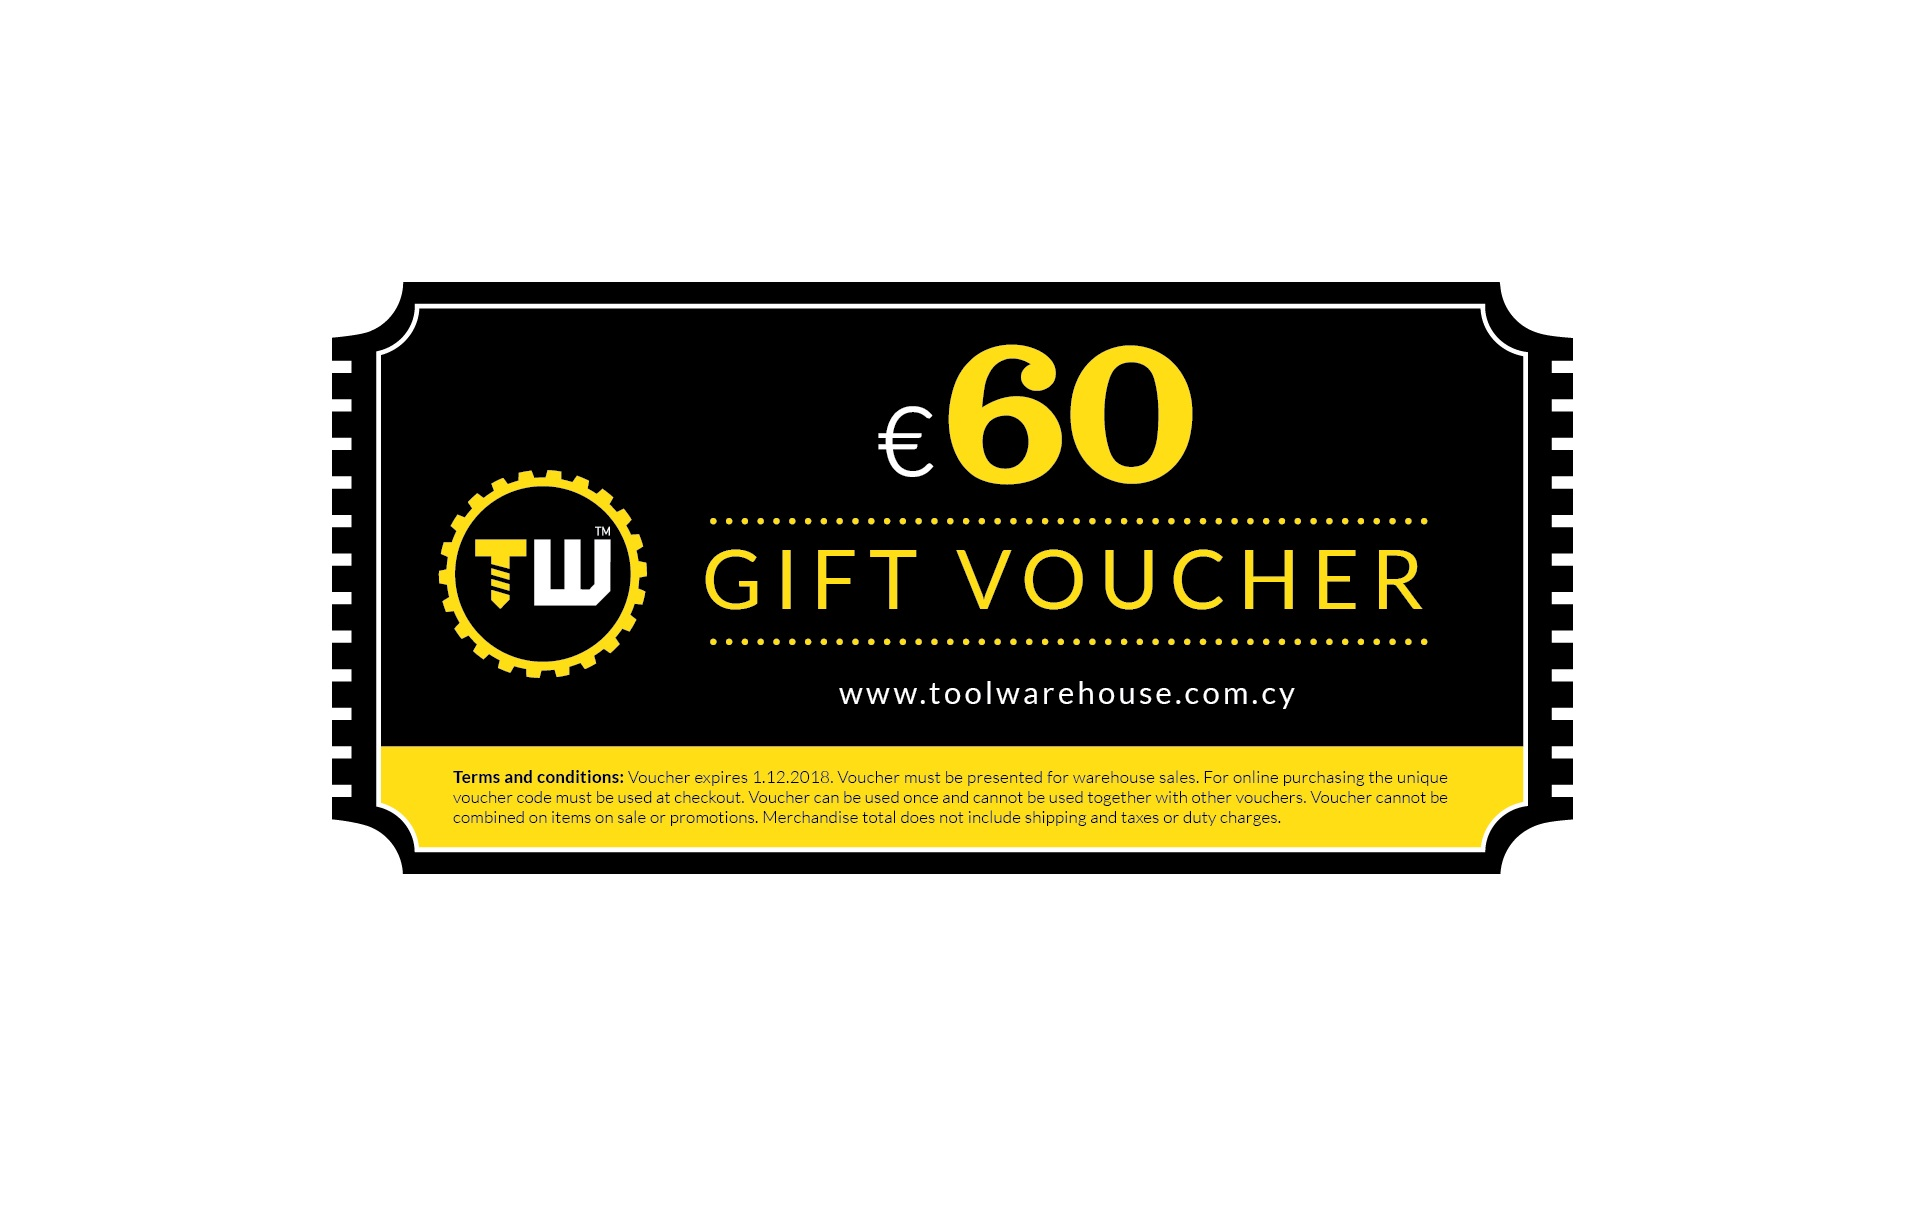 60€ Toolwarehouse Voucher